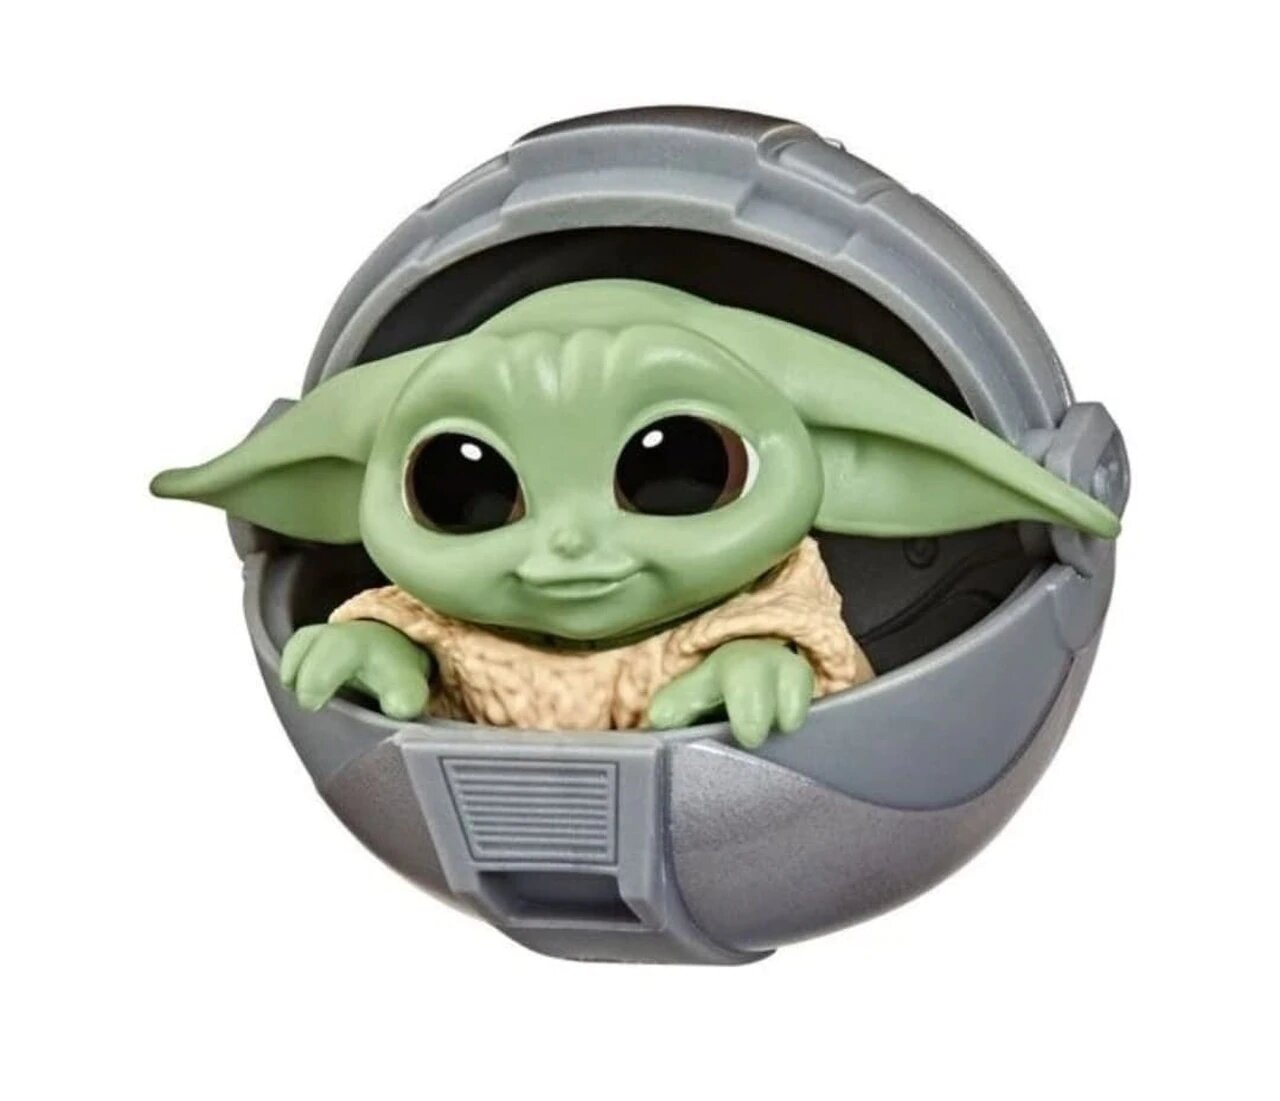 Boneco Grogu ''Baby Yoda'' Stroller (The Child): The Mandalorian (Star Wars) Serie 2 - Hasbro